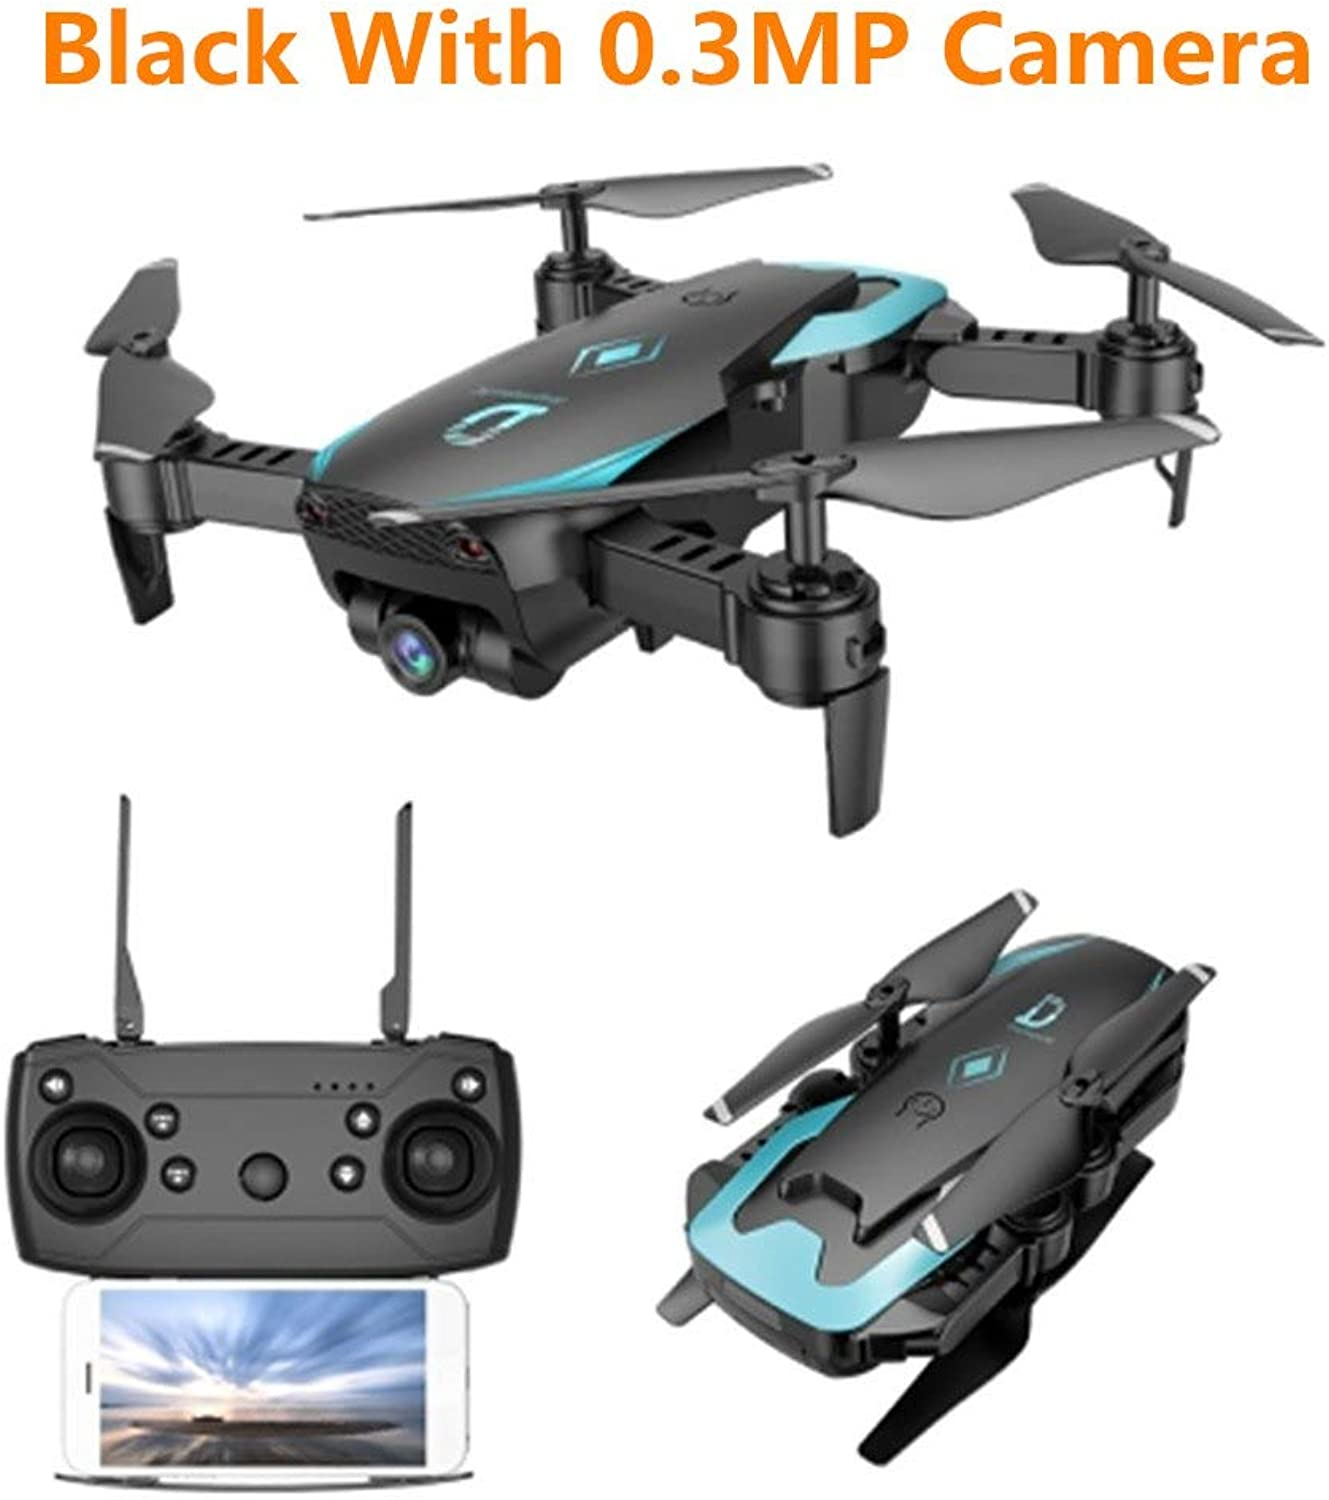 Generic Rc Helicopter X12 Drone Quadcopter with Camera WiFi FPV 2.4G One Key Return Helicopter with HD Camera Toys VS E58 Dron Black